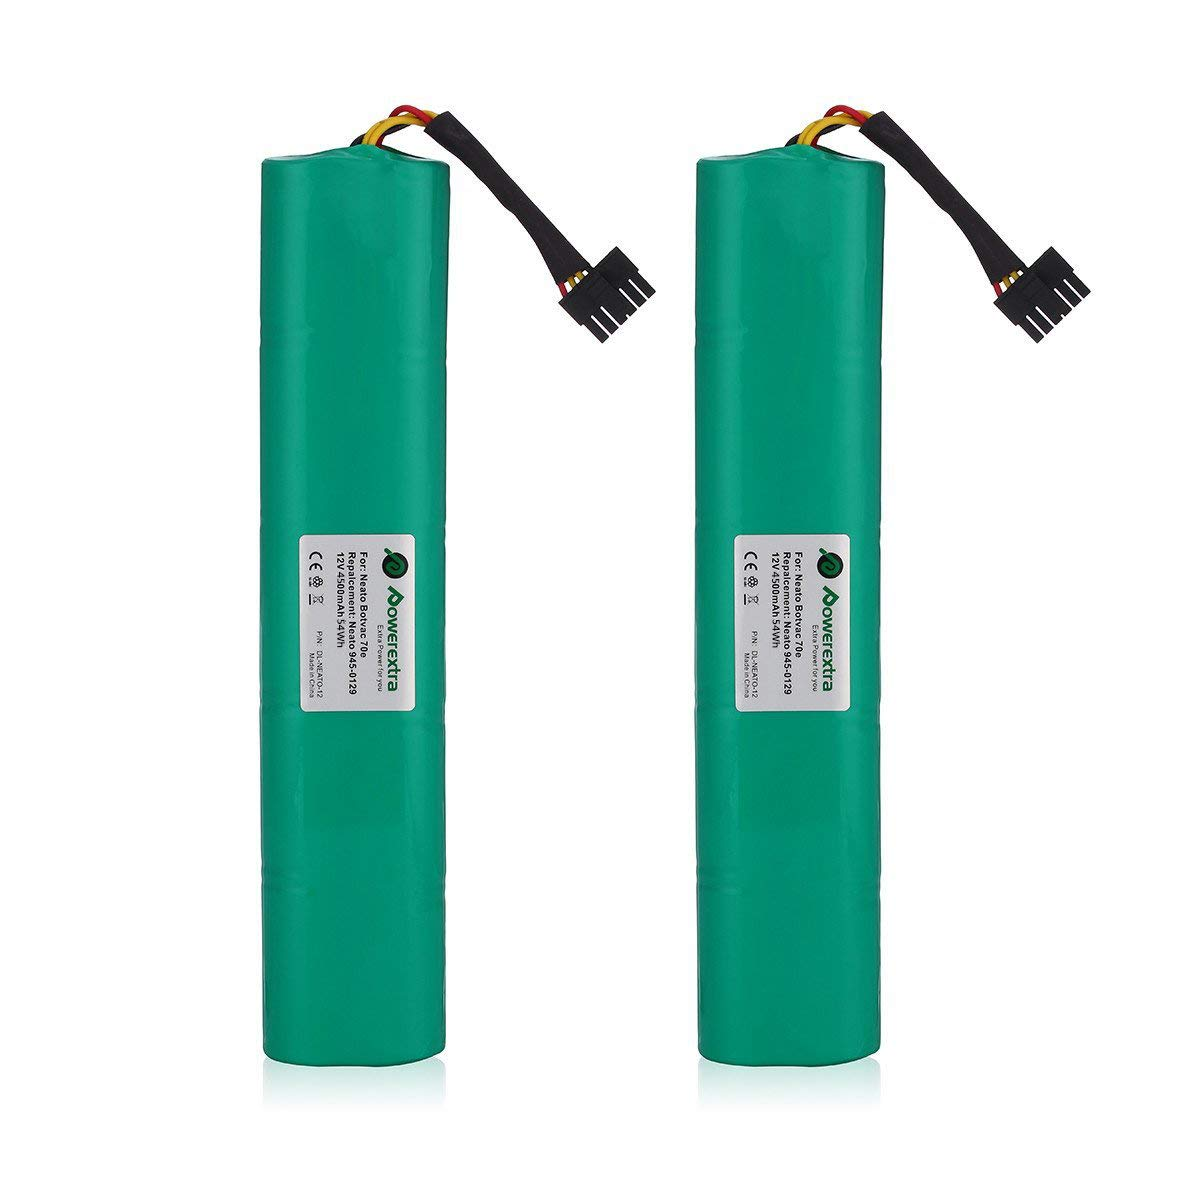 Powerextra 2 Pack 12V 4500mAh Ni-Mh Replacement Battery Compatible with Neato Botavc Series and Botvac D Series Neato Botvac 70e, 75, 80, 85, D75, D80, Botvac D85 by Powerextra